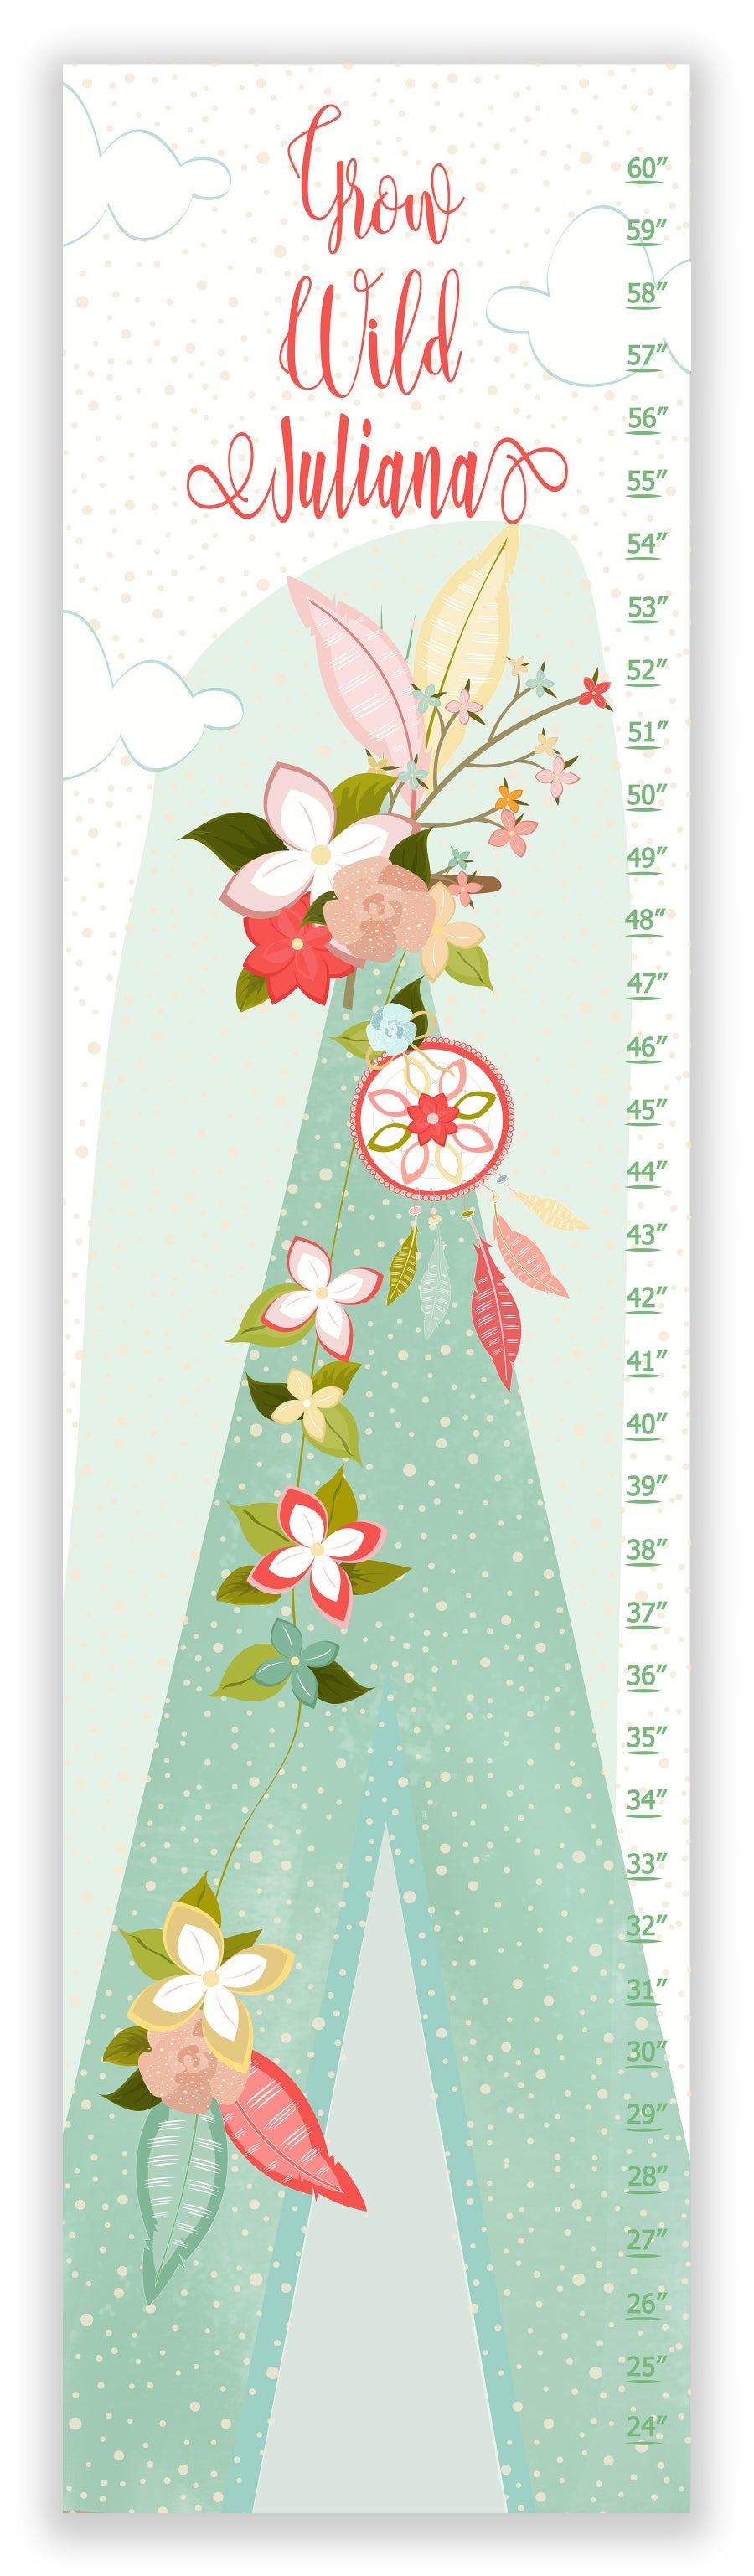 Image of Grow Wild Floral Boho TeePee - Personalized Mint and Blush Canvas Growth Chart